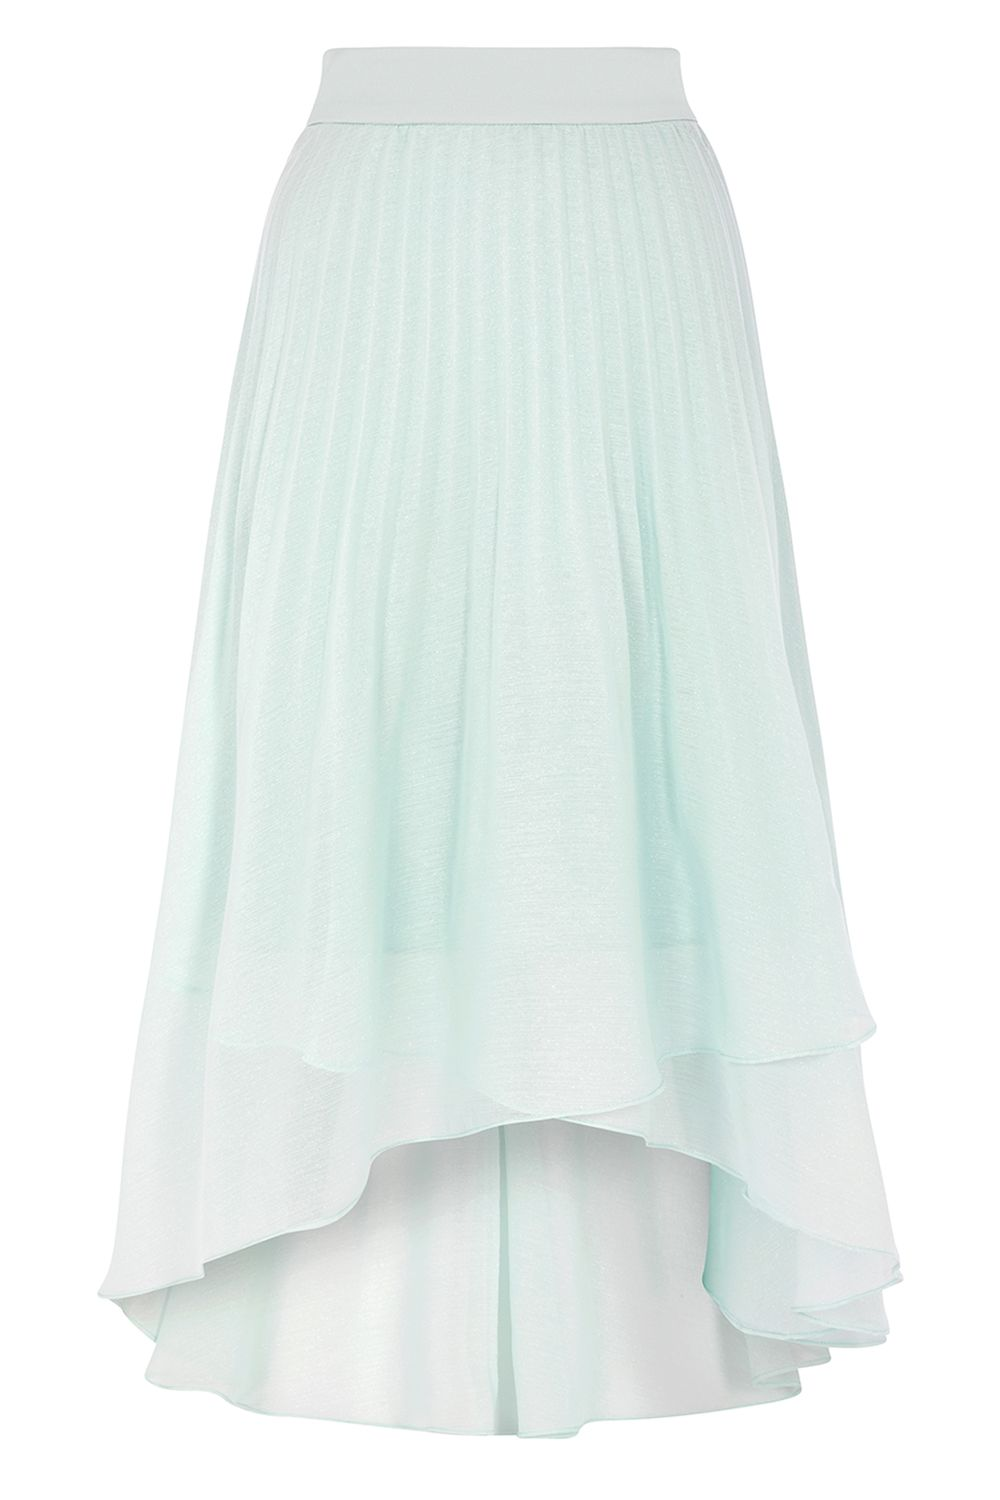 Coast Amelia Bridesmaid Skirt, Mint